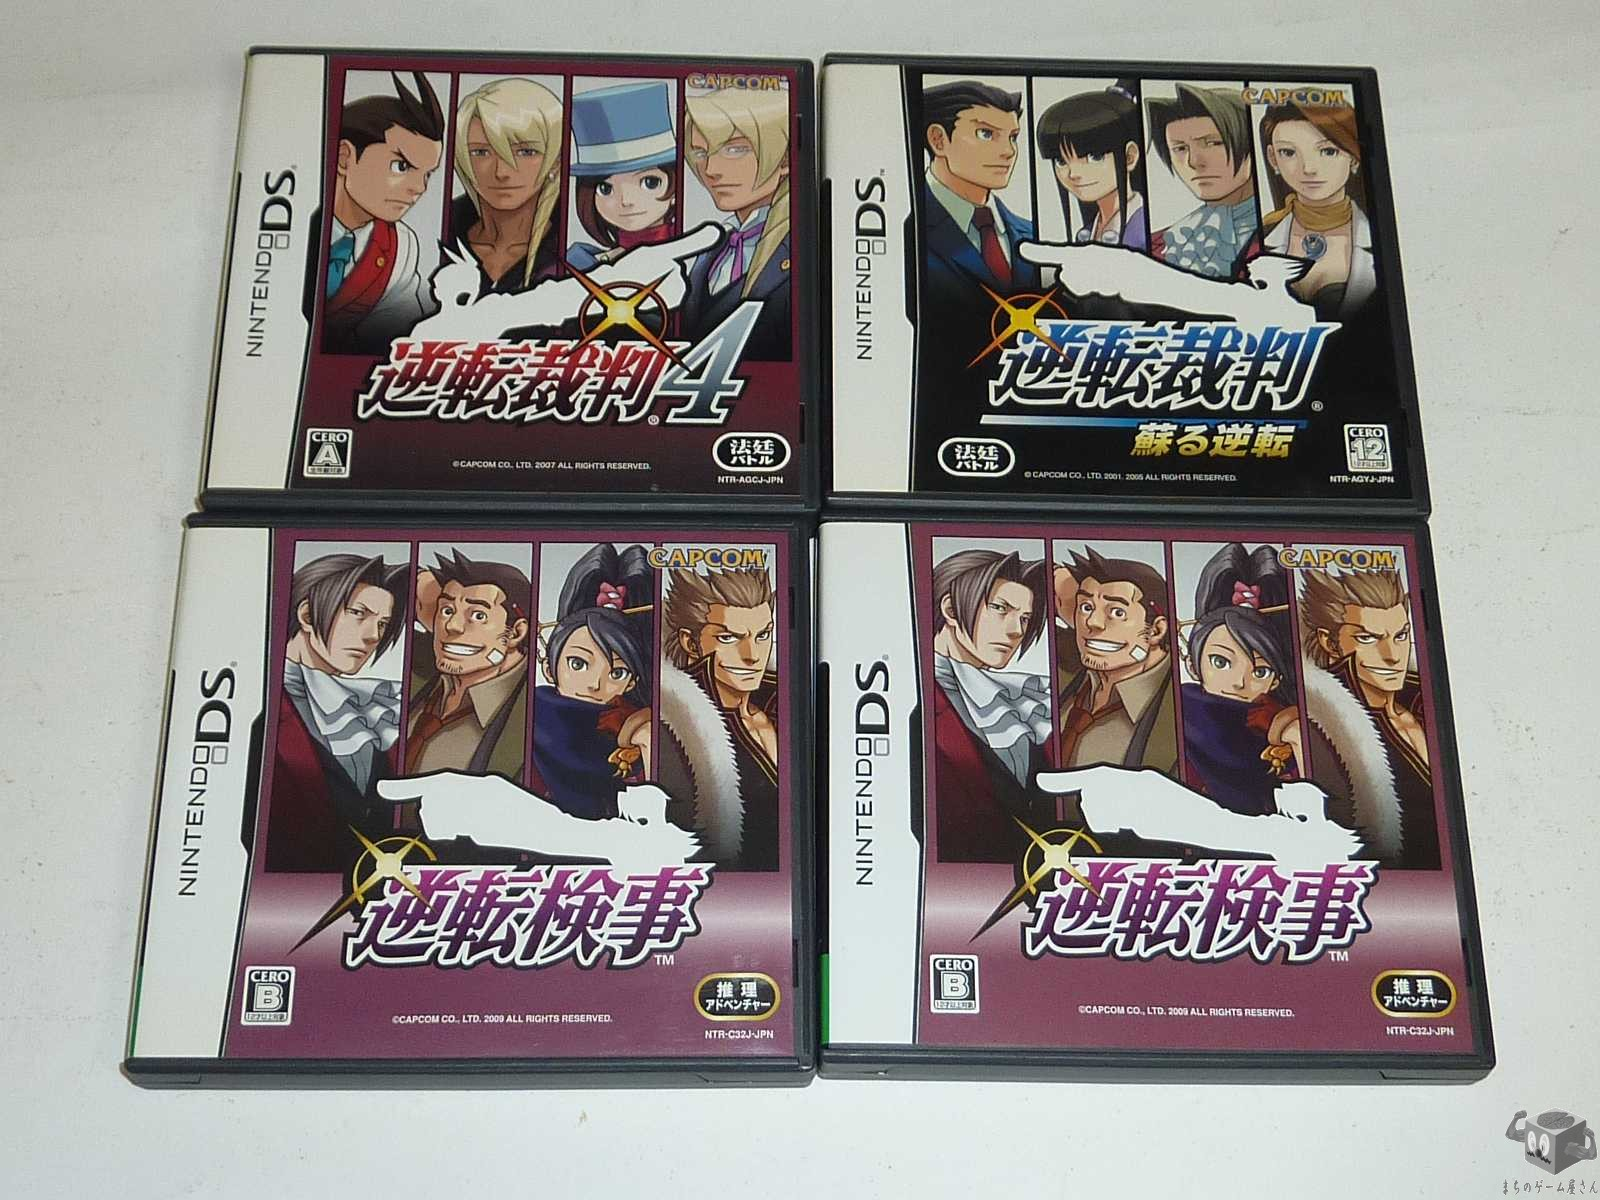 [DS]  Apollo Justice: Ace Attorney - Gyakuten Saiban 4...etc 4Games Set